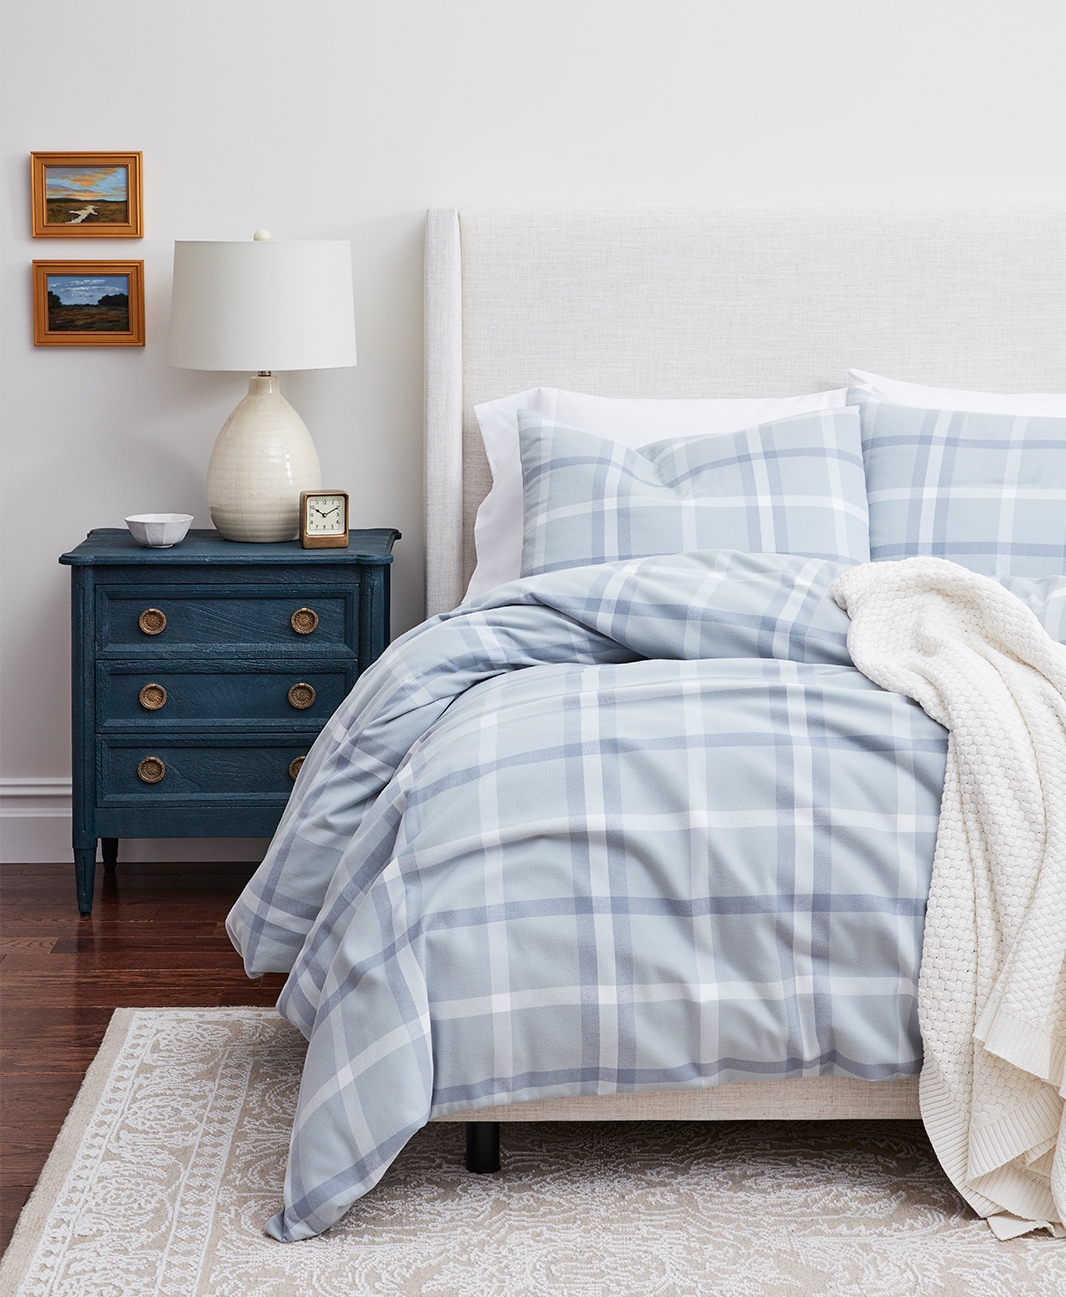 Bed with Shore Modern Plaid Flannel Duvet Set image